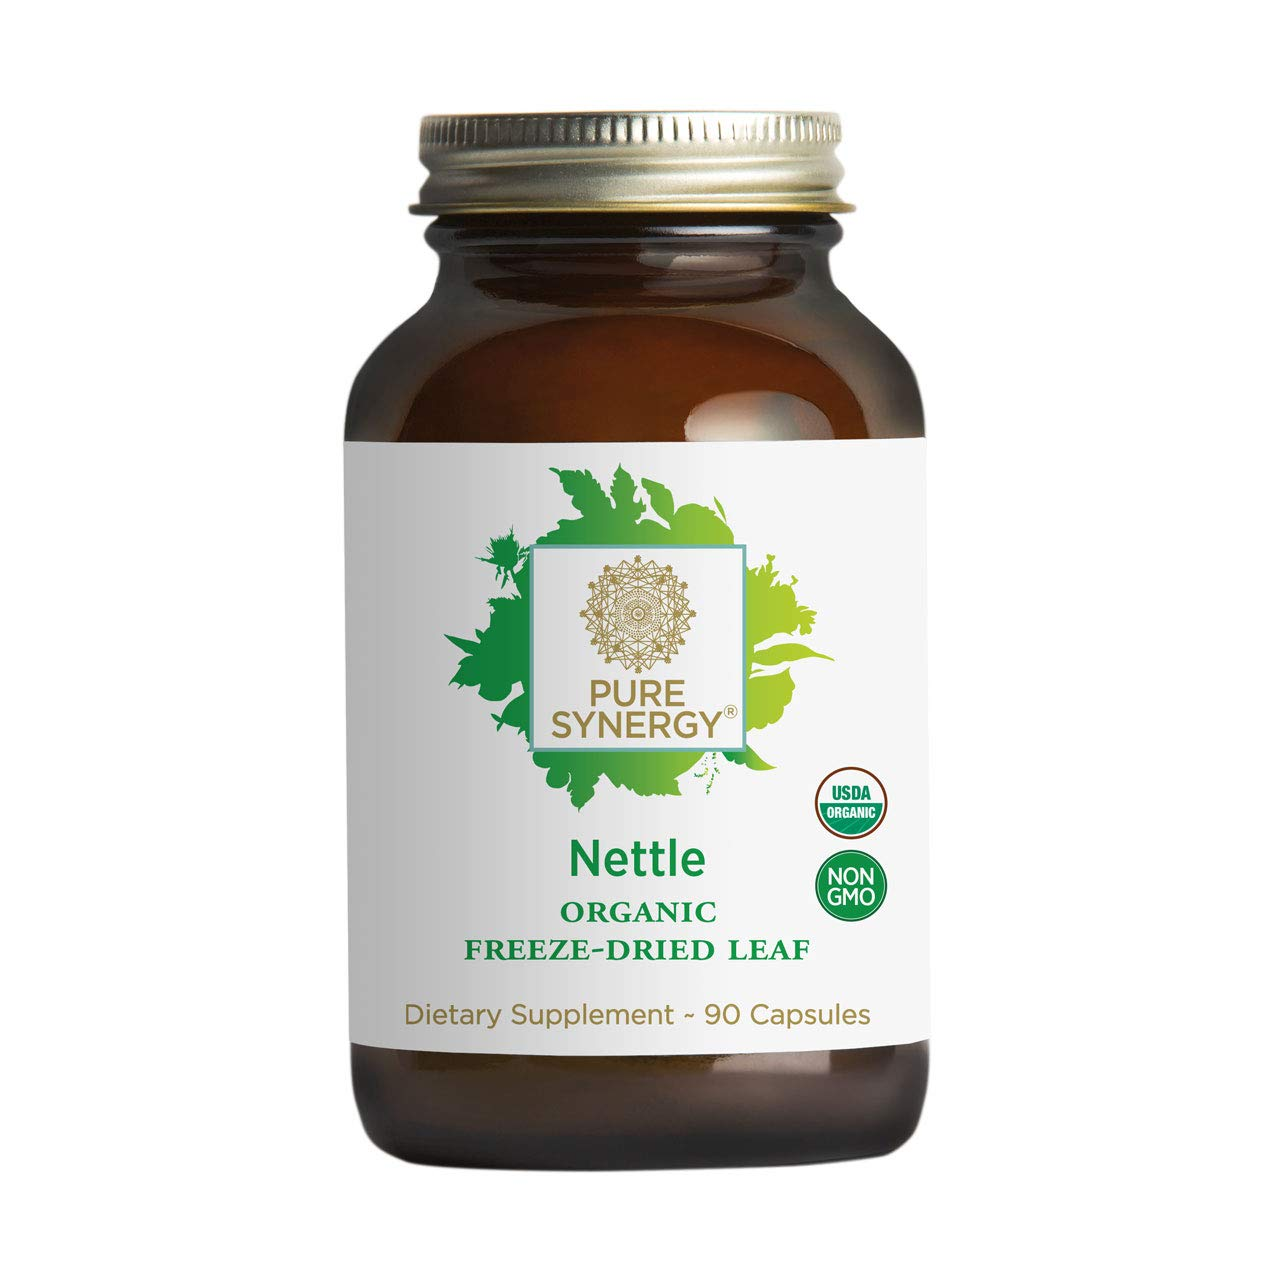 Pure Synergy USDA Organic Freeze-Dried Nettle Leaf (90 Capsules) Supports Healthy Histamine Levels During Allergy Season